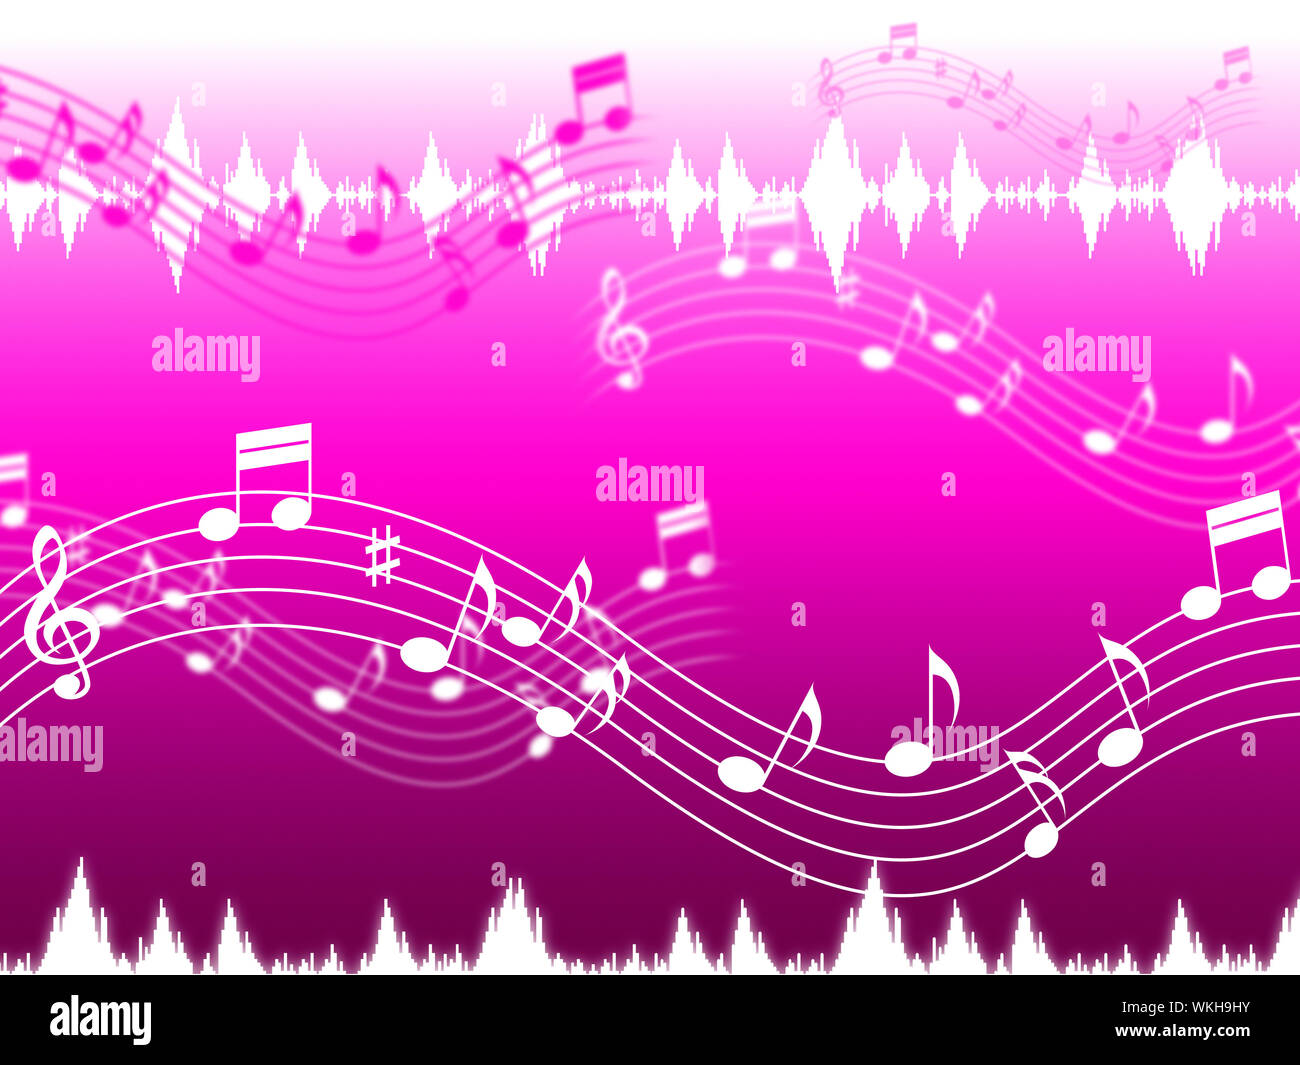 Pink Music Background Showing Rap Rock Or RandB Stock Photo